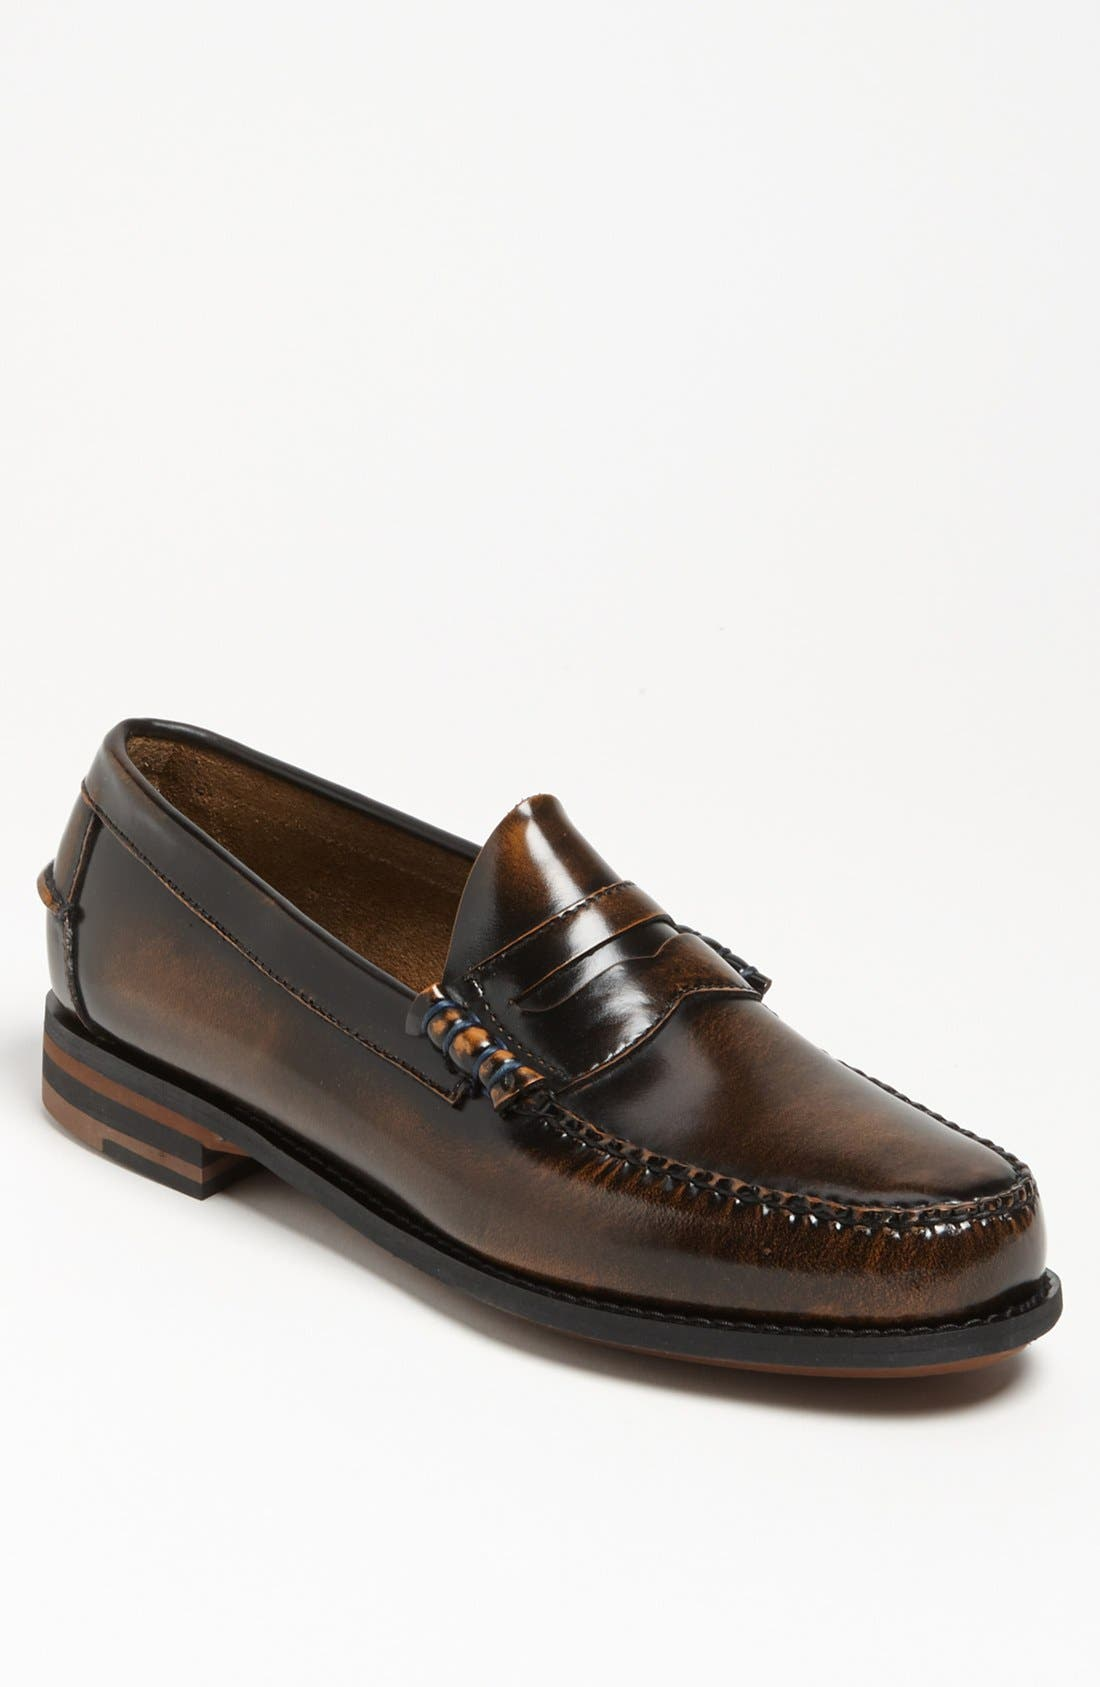 Alternate Image 1 Selected - G.H. Bass & Co. 'Naples' Penny Loafer